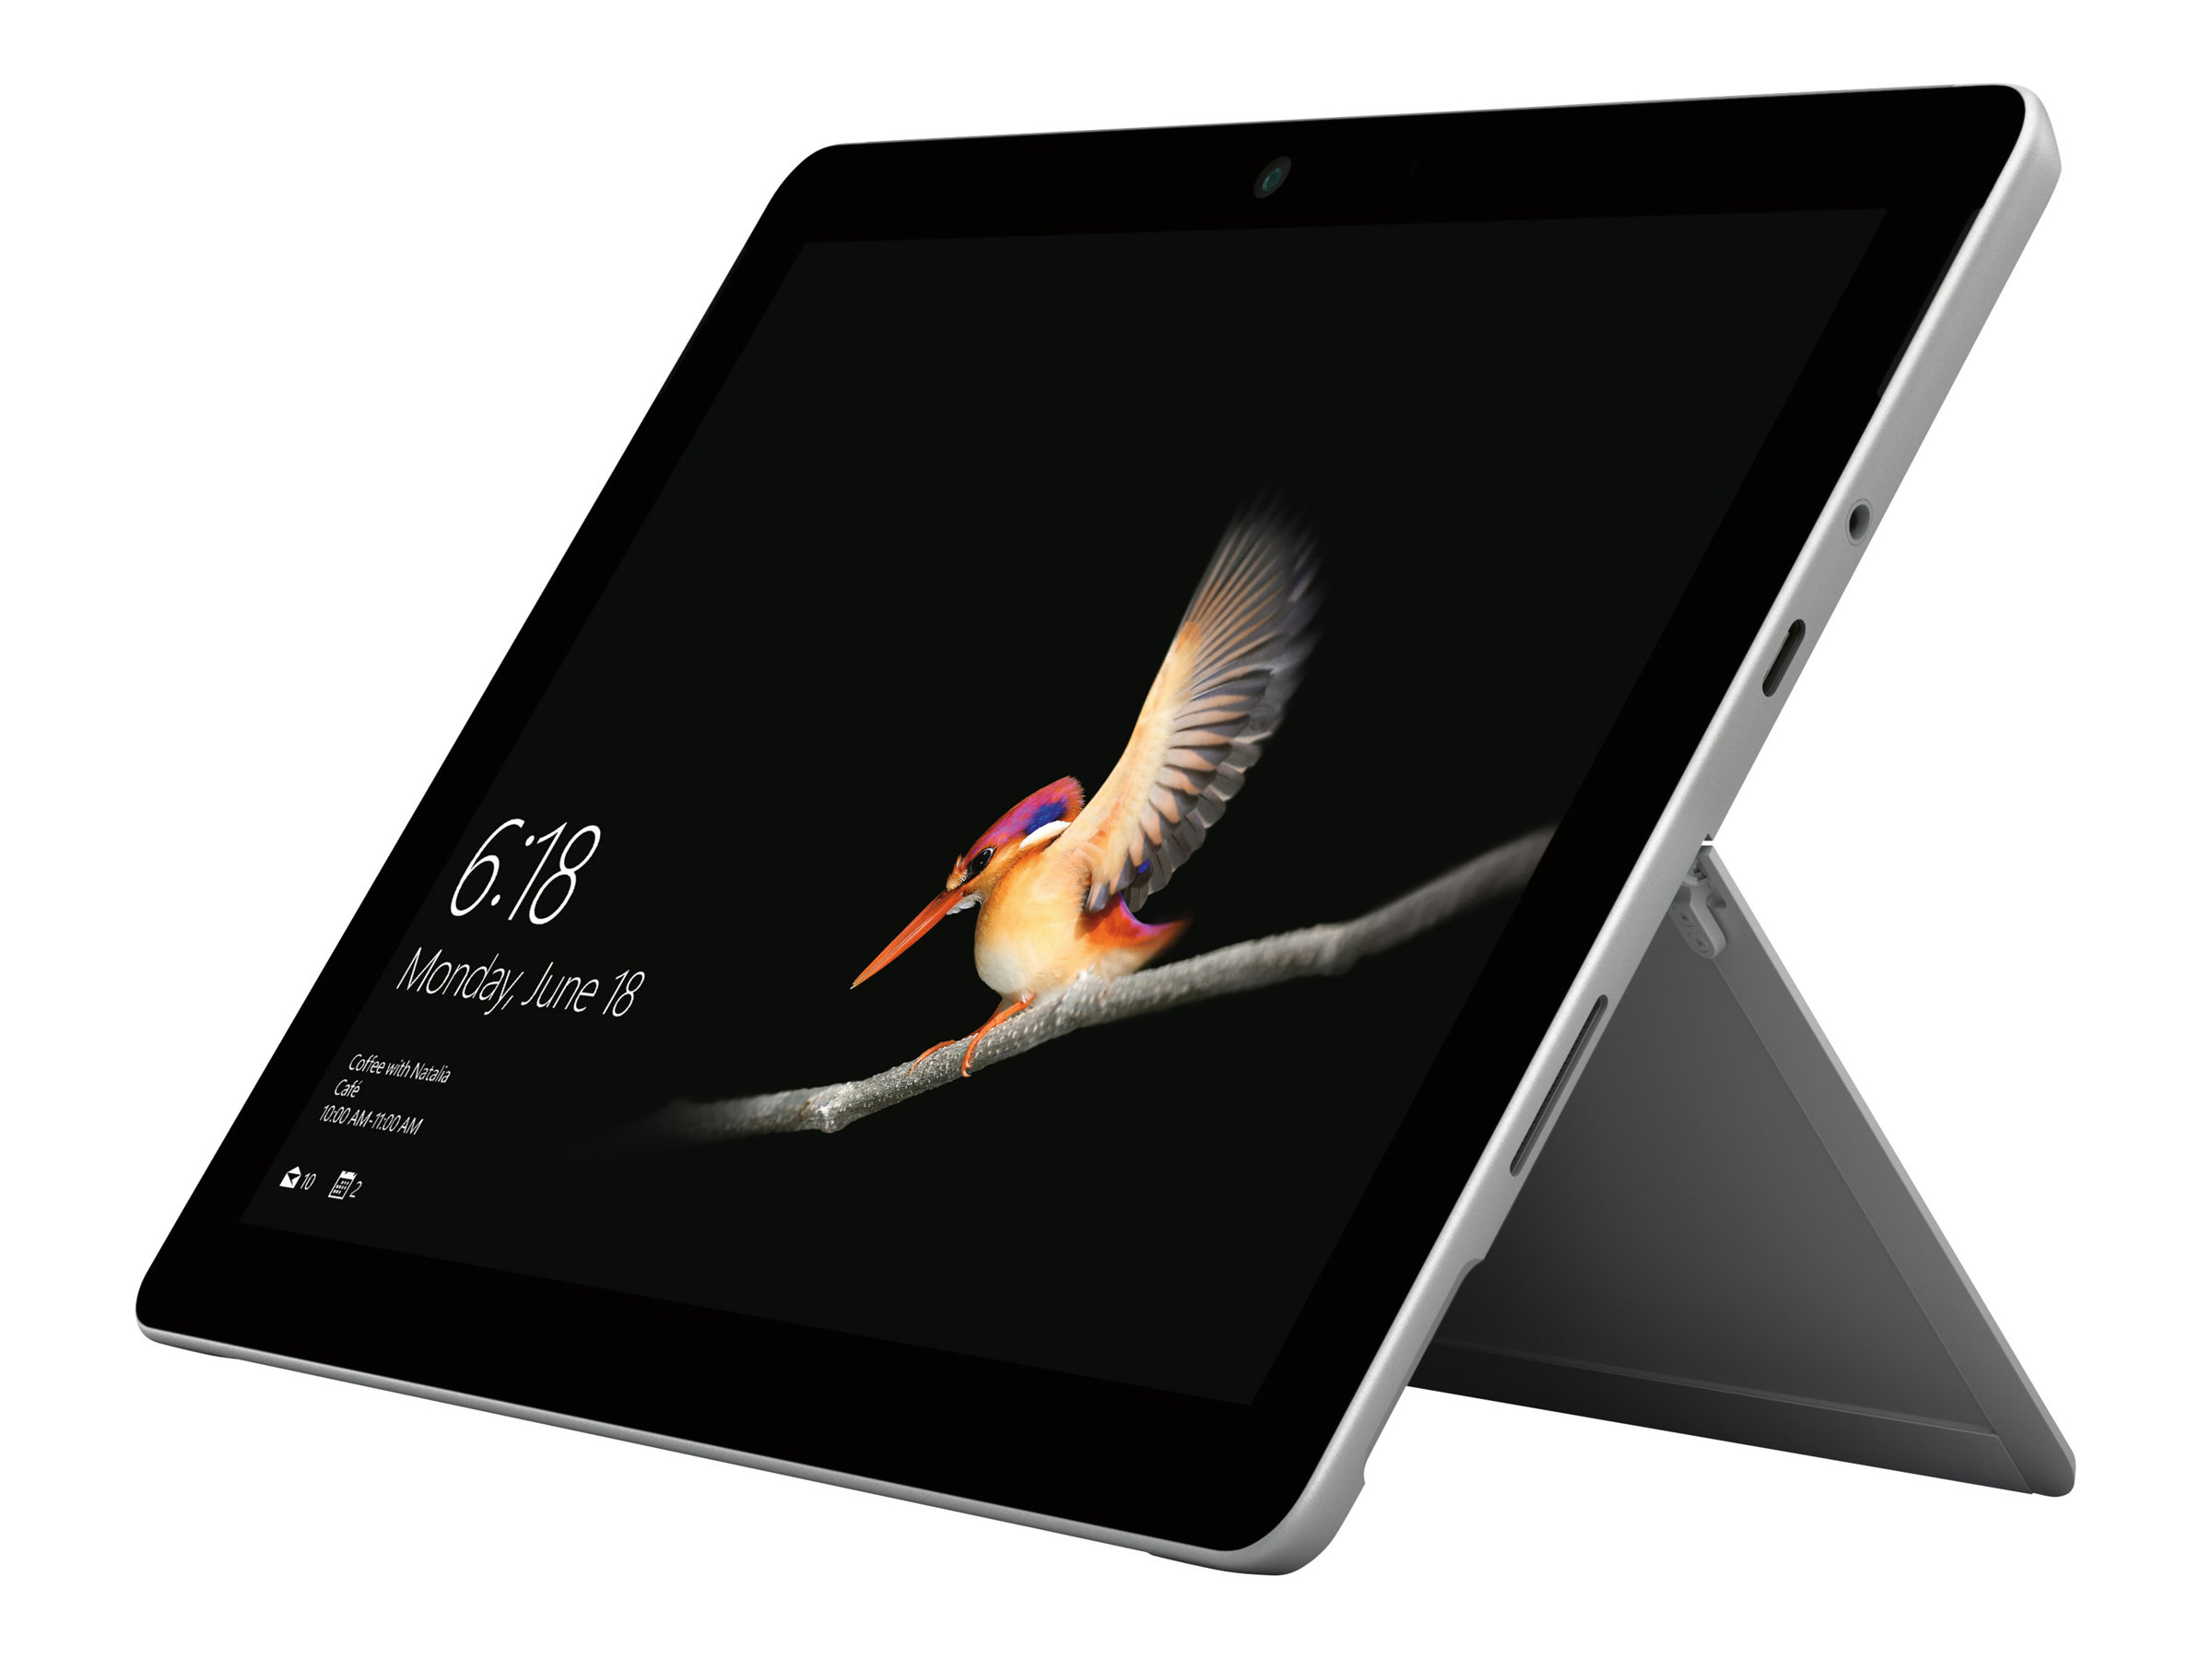 Microsoft Surface Go - Tablet - Pentium Gold 4415Y / 1.6 GHz - Win 10 Pro - 8 GB RAM - 128 GB SSD NVMe